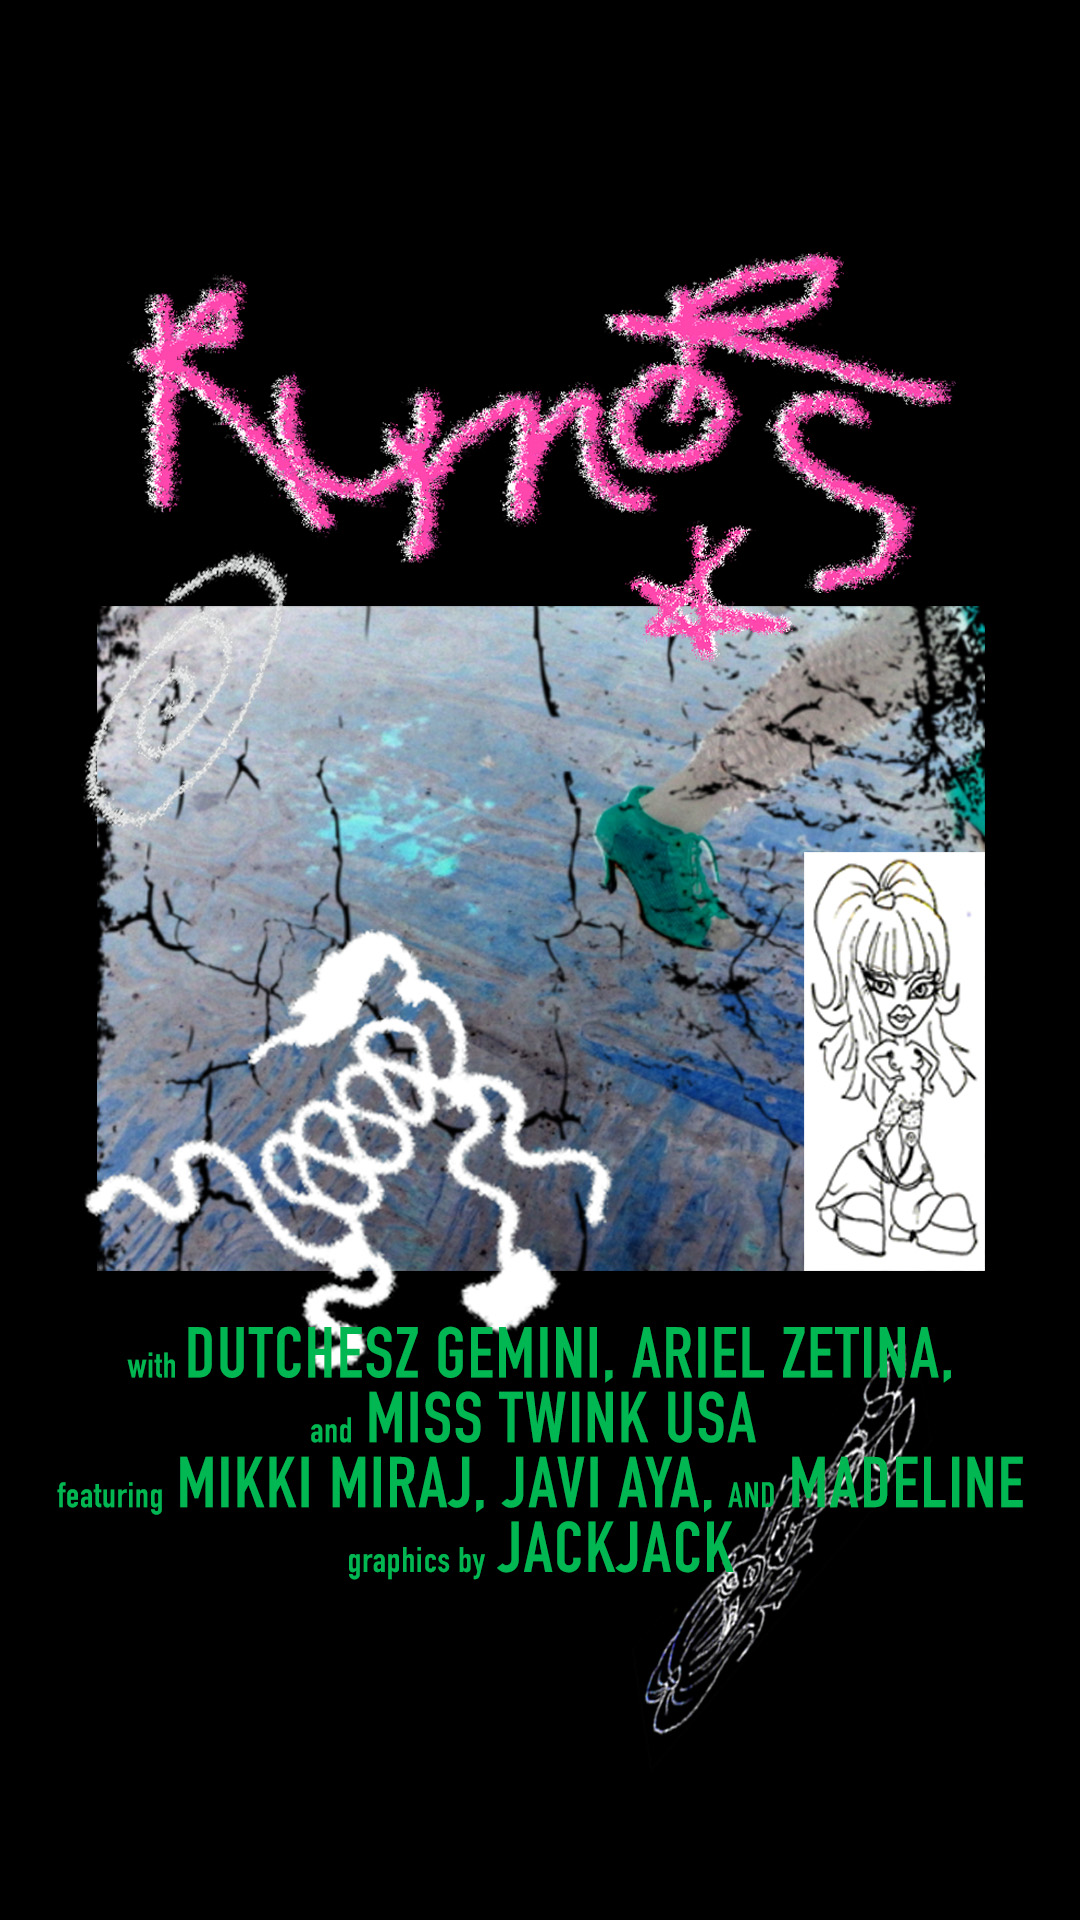 Instagram Story poster for the party Rumors at Eastroom; 2019;  role:   designer ; hosted by Dutchesz Gemini, Ariel Zetina, and Miss Twink USA